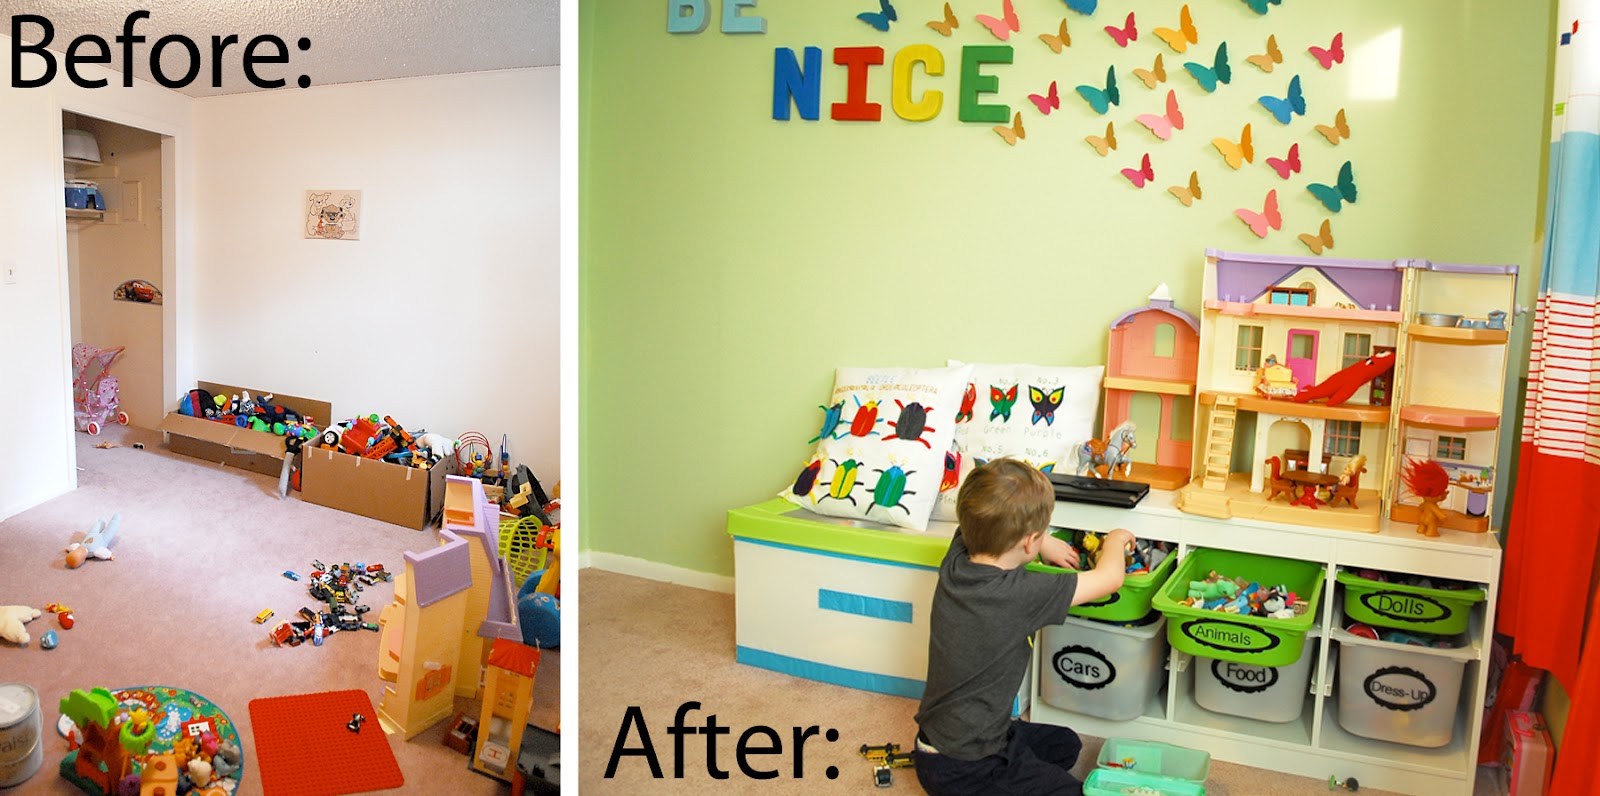 Paint ideas accent wall - Playroom Reveal Before And After Shwin And Shwin